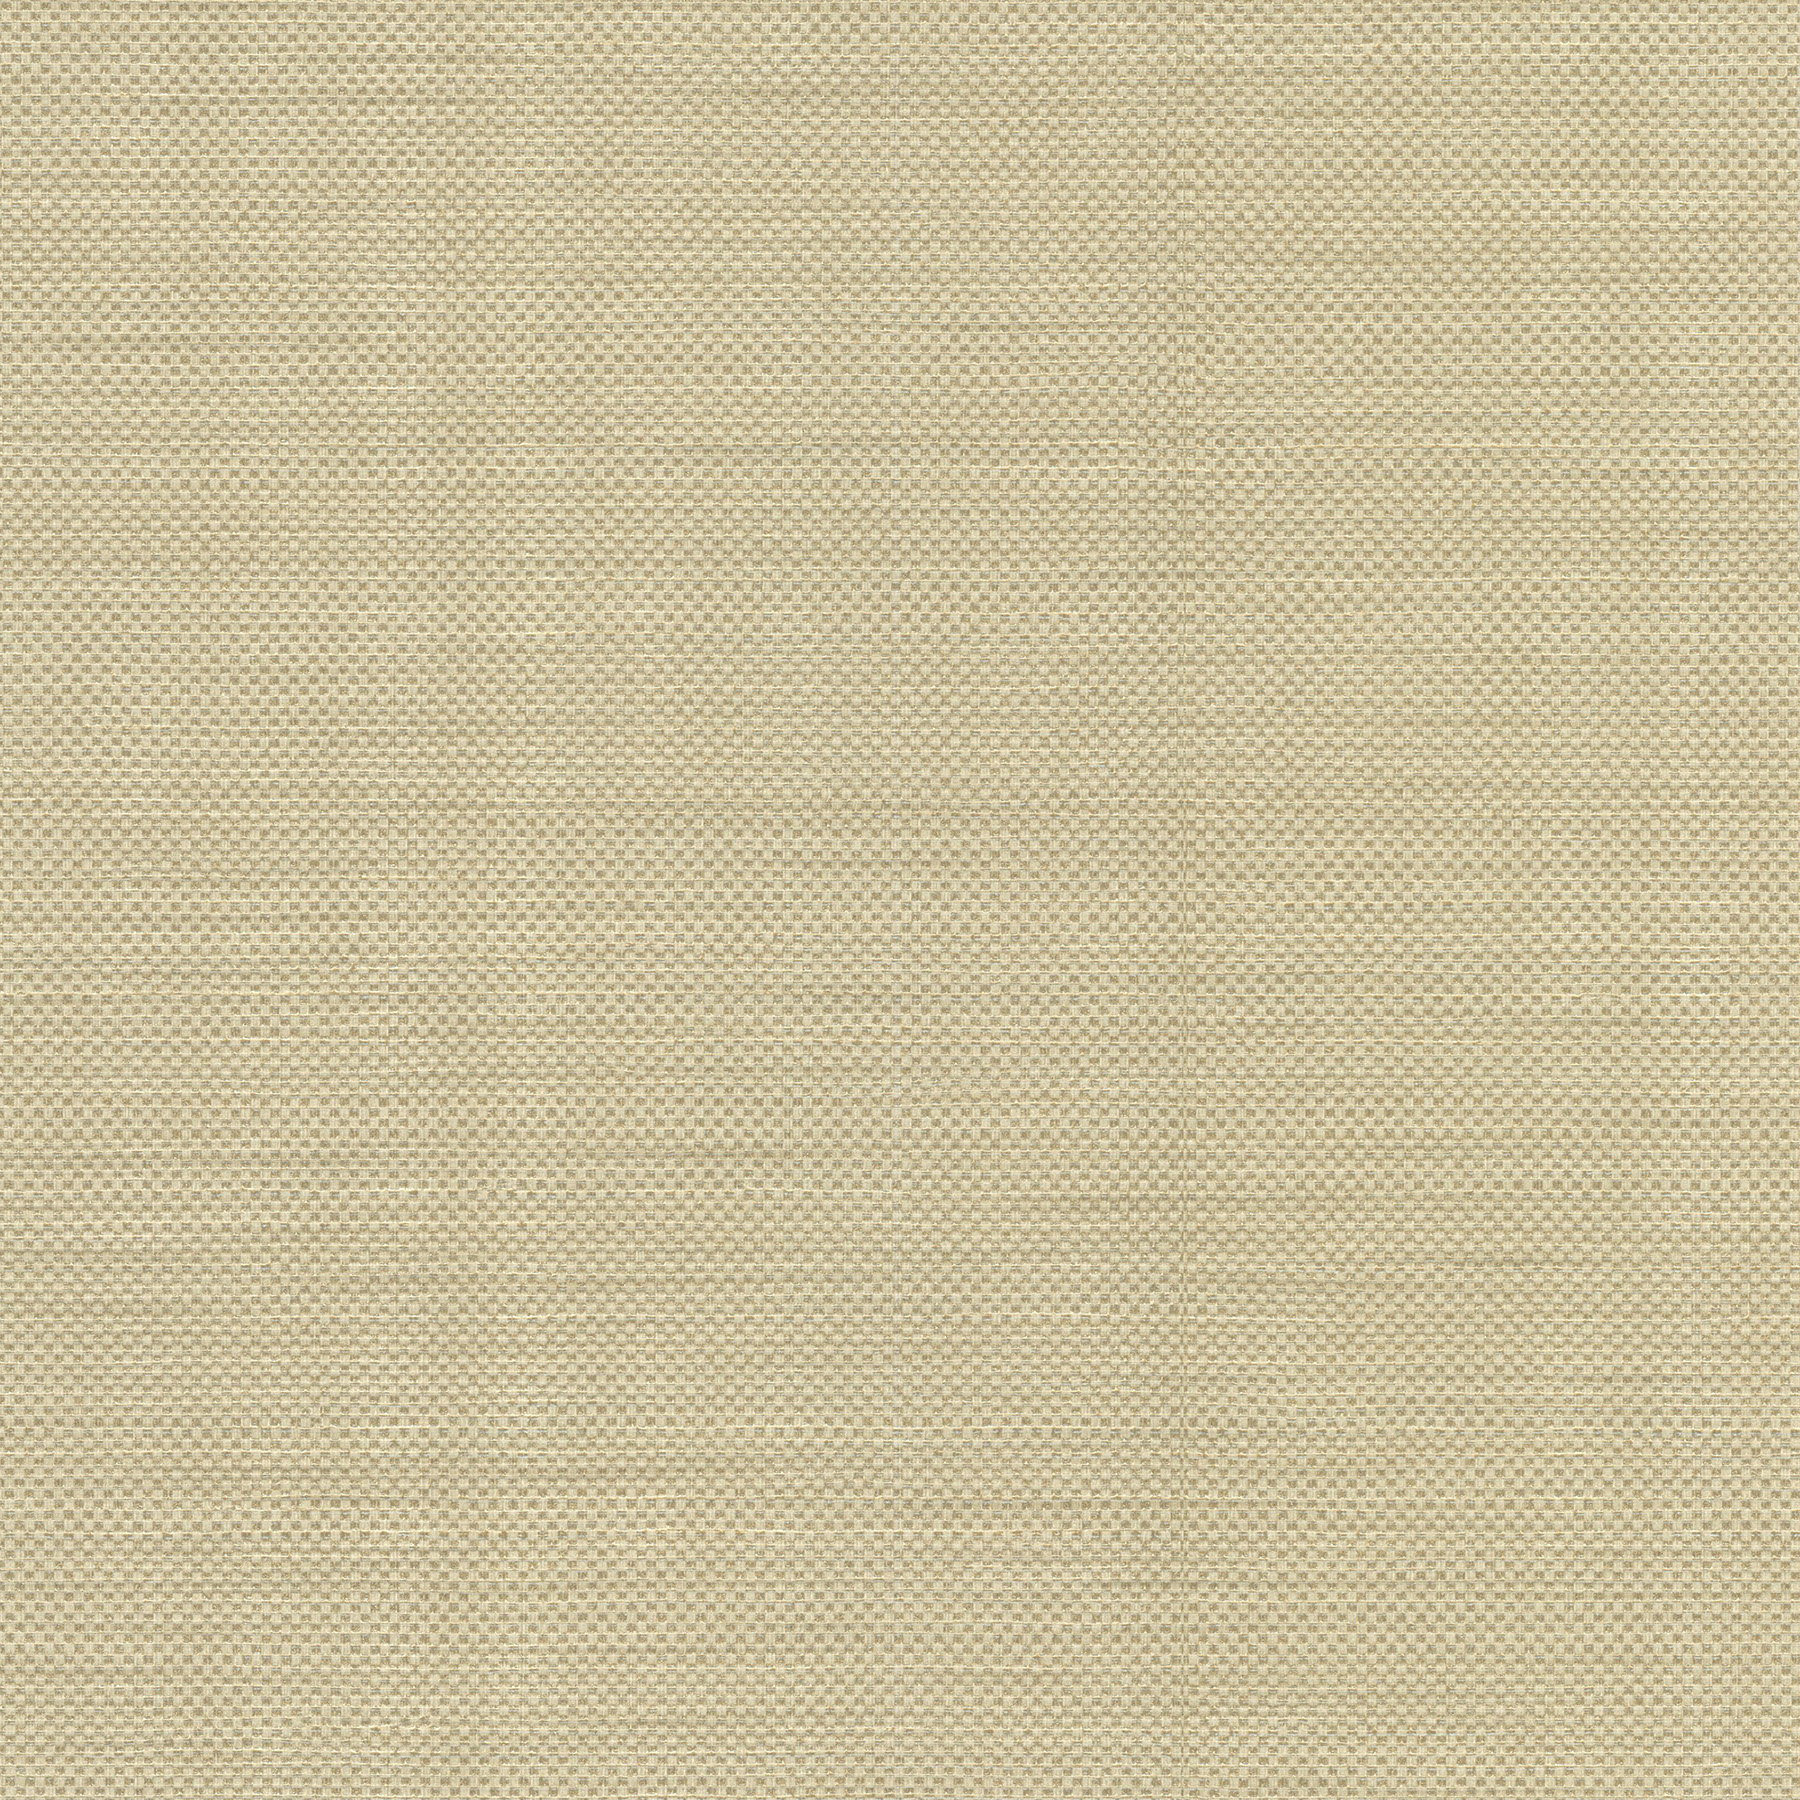 Picture of Bellot Grey Woven Texture Wallpaper